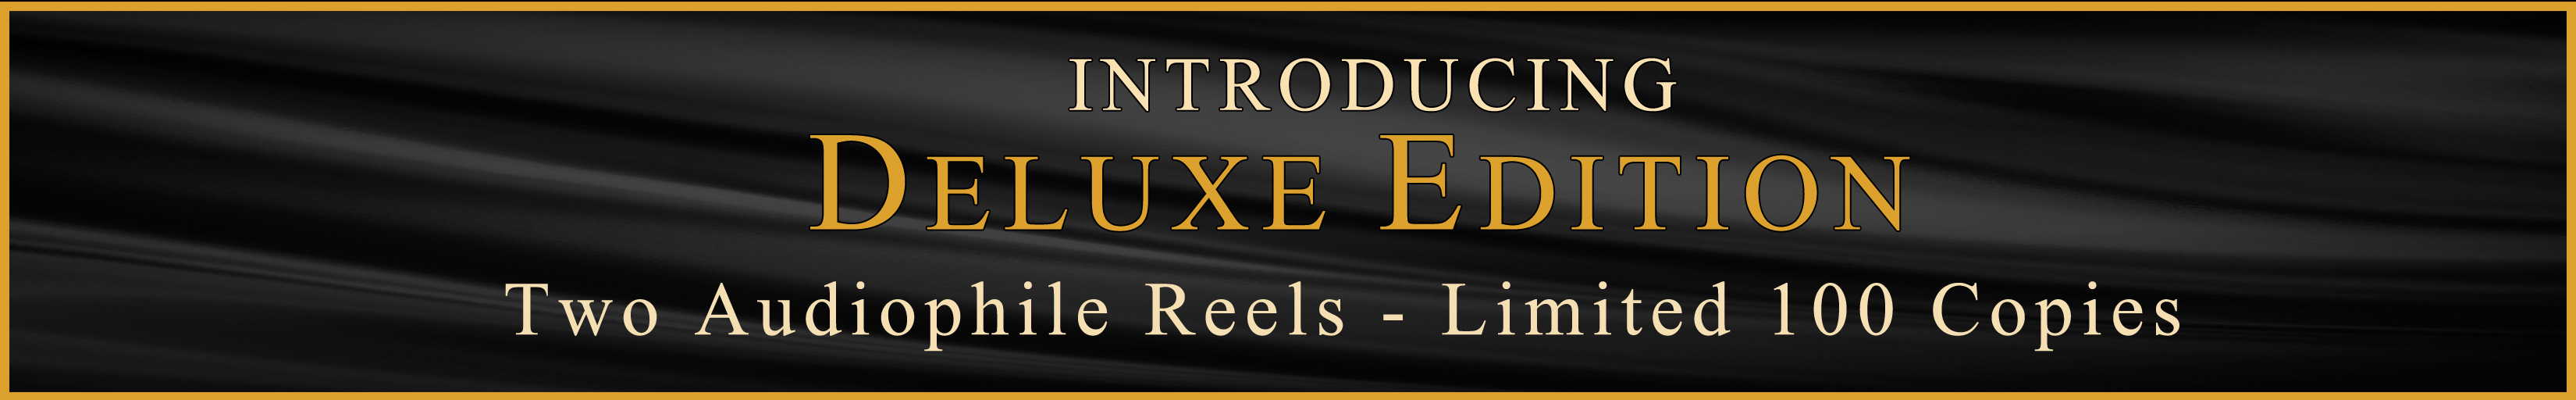 Deluxe tapes banner